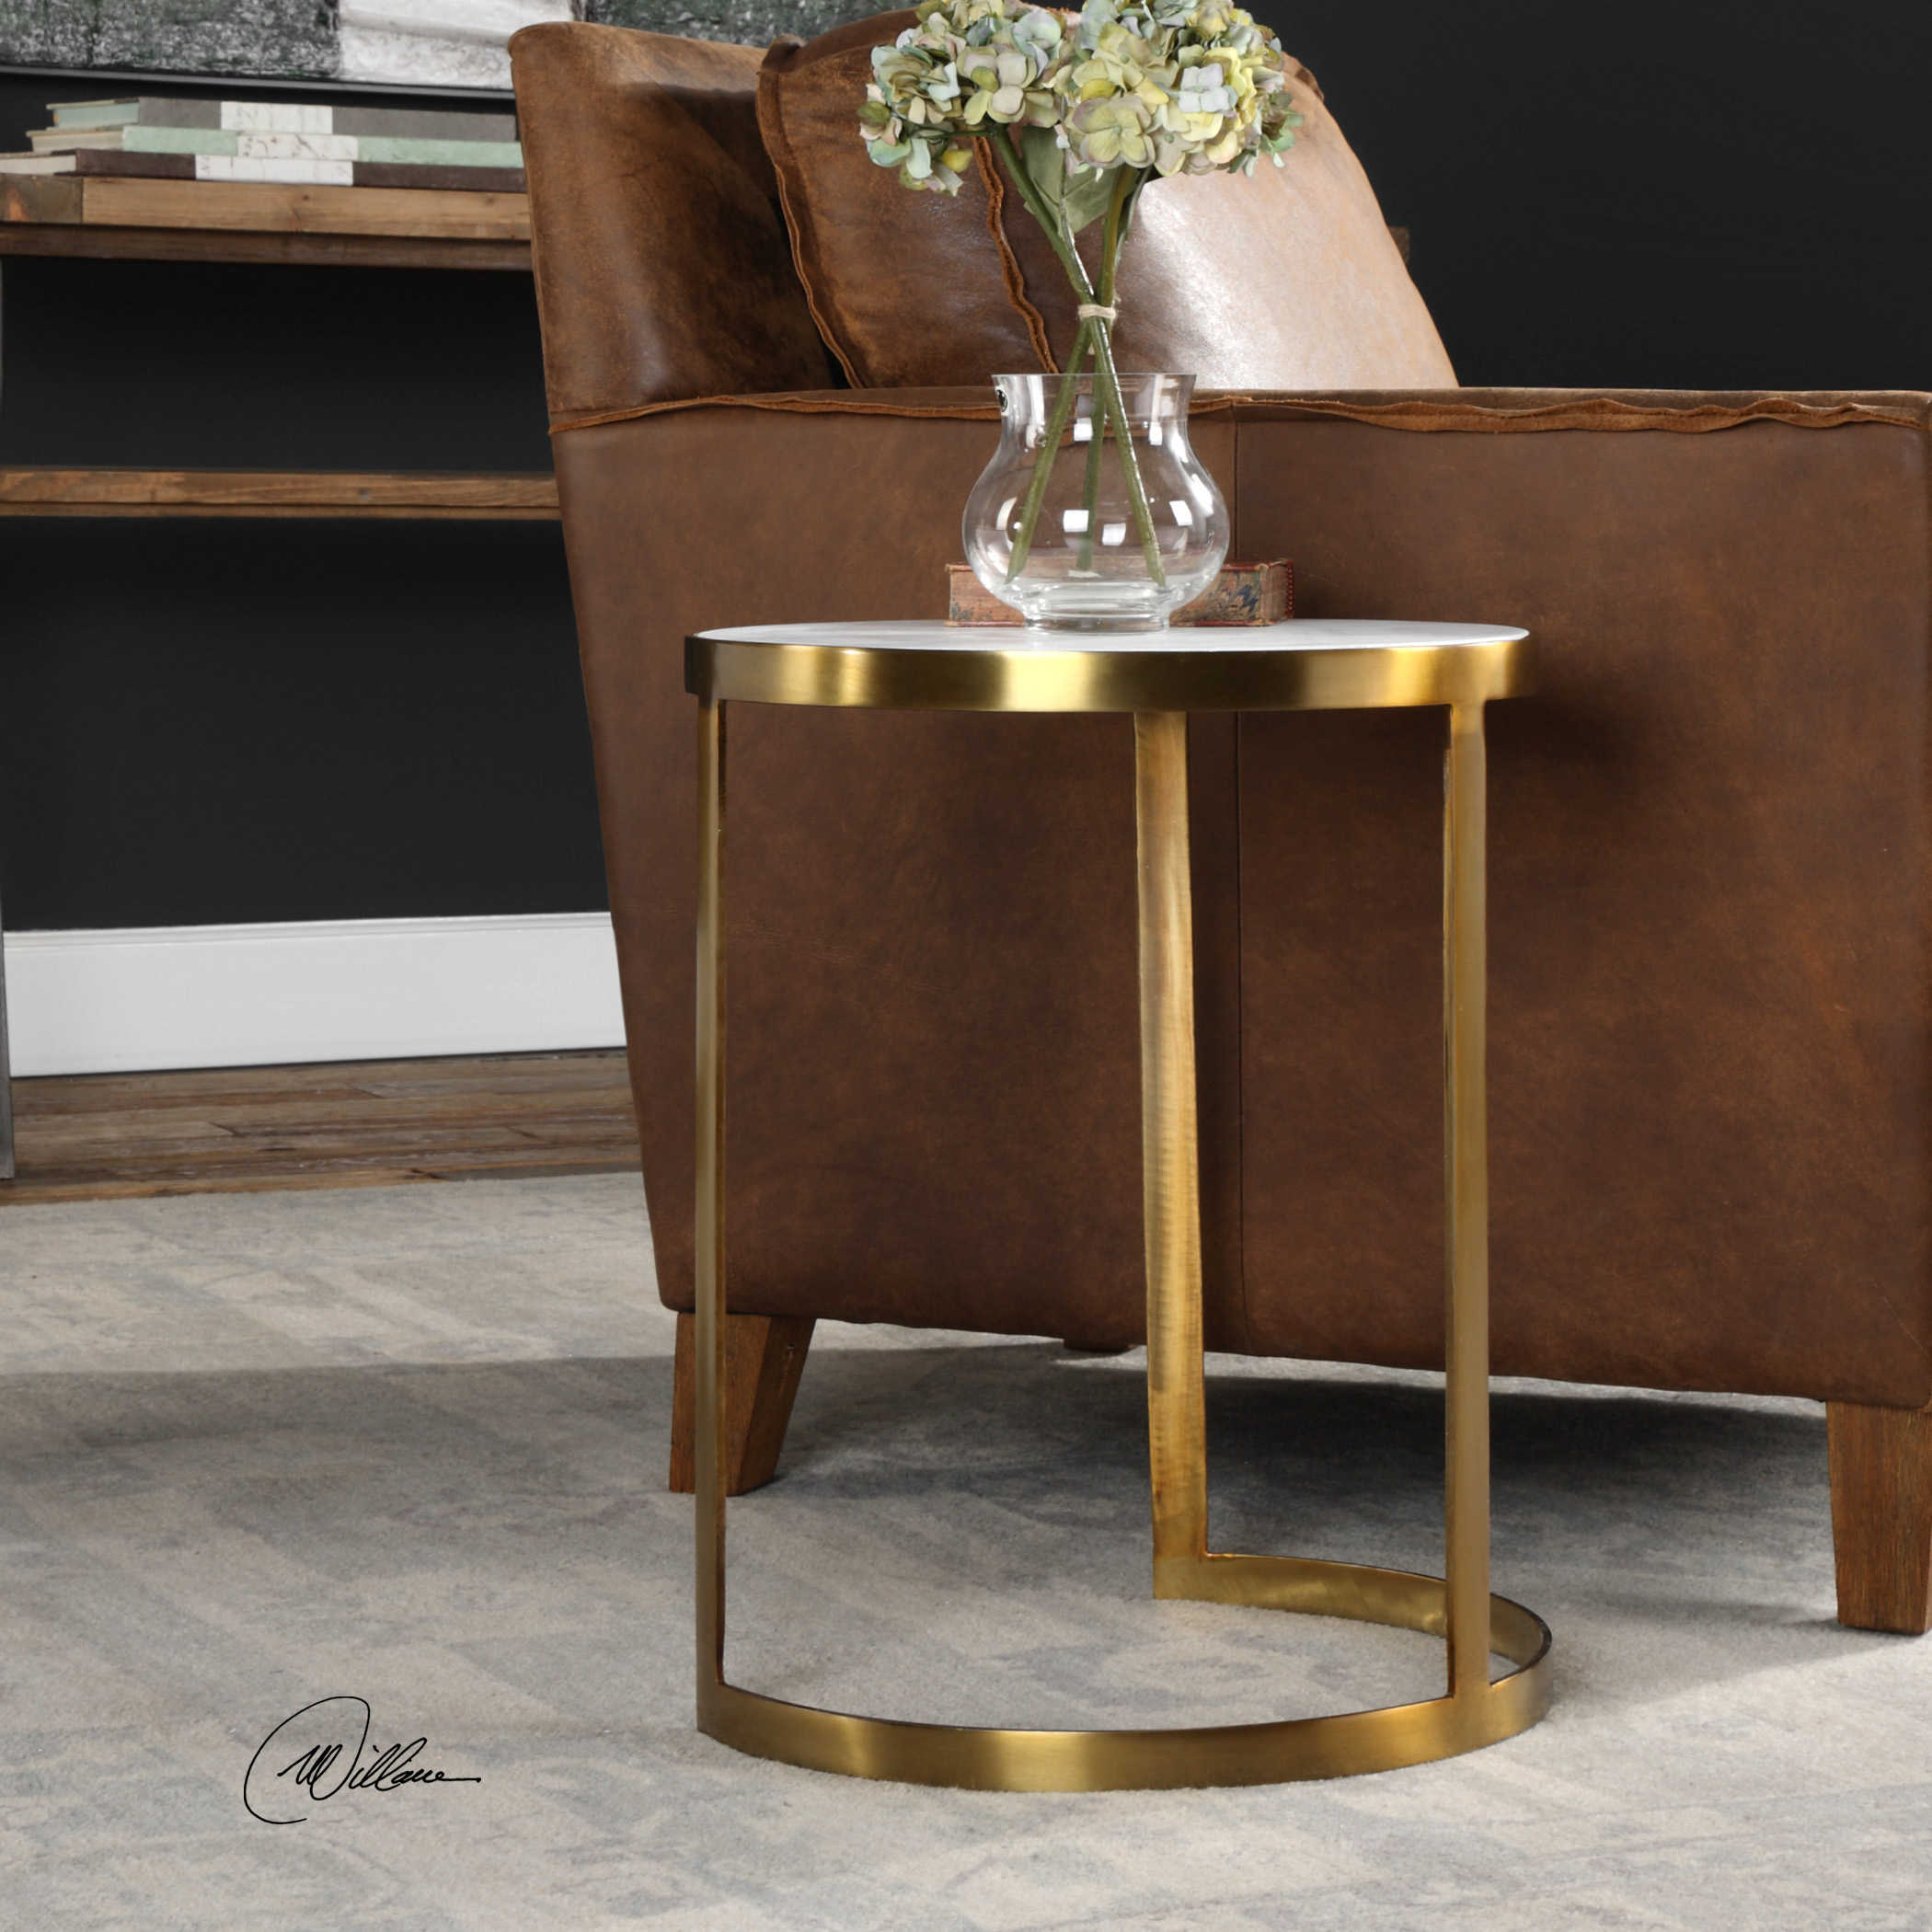 uttermost accent furniture mirrors wall decor clocks lamps art end tables best centre table with glass top broyhill patio chairs small black garden side powell mirrored nightstand